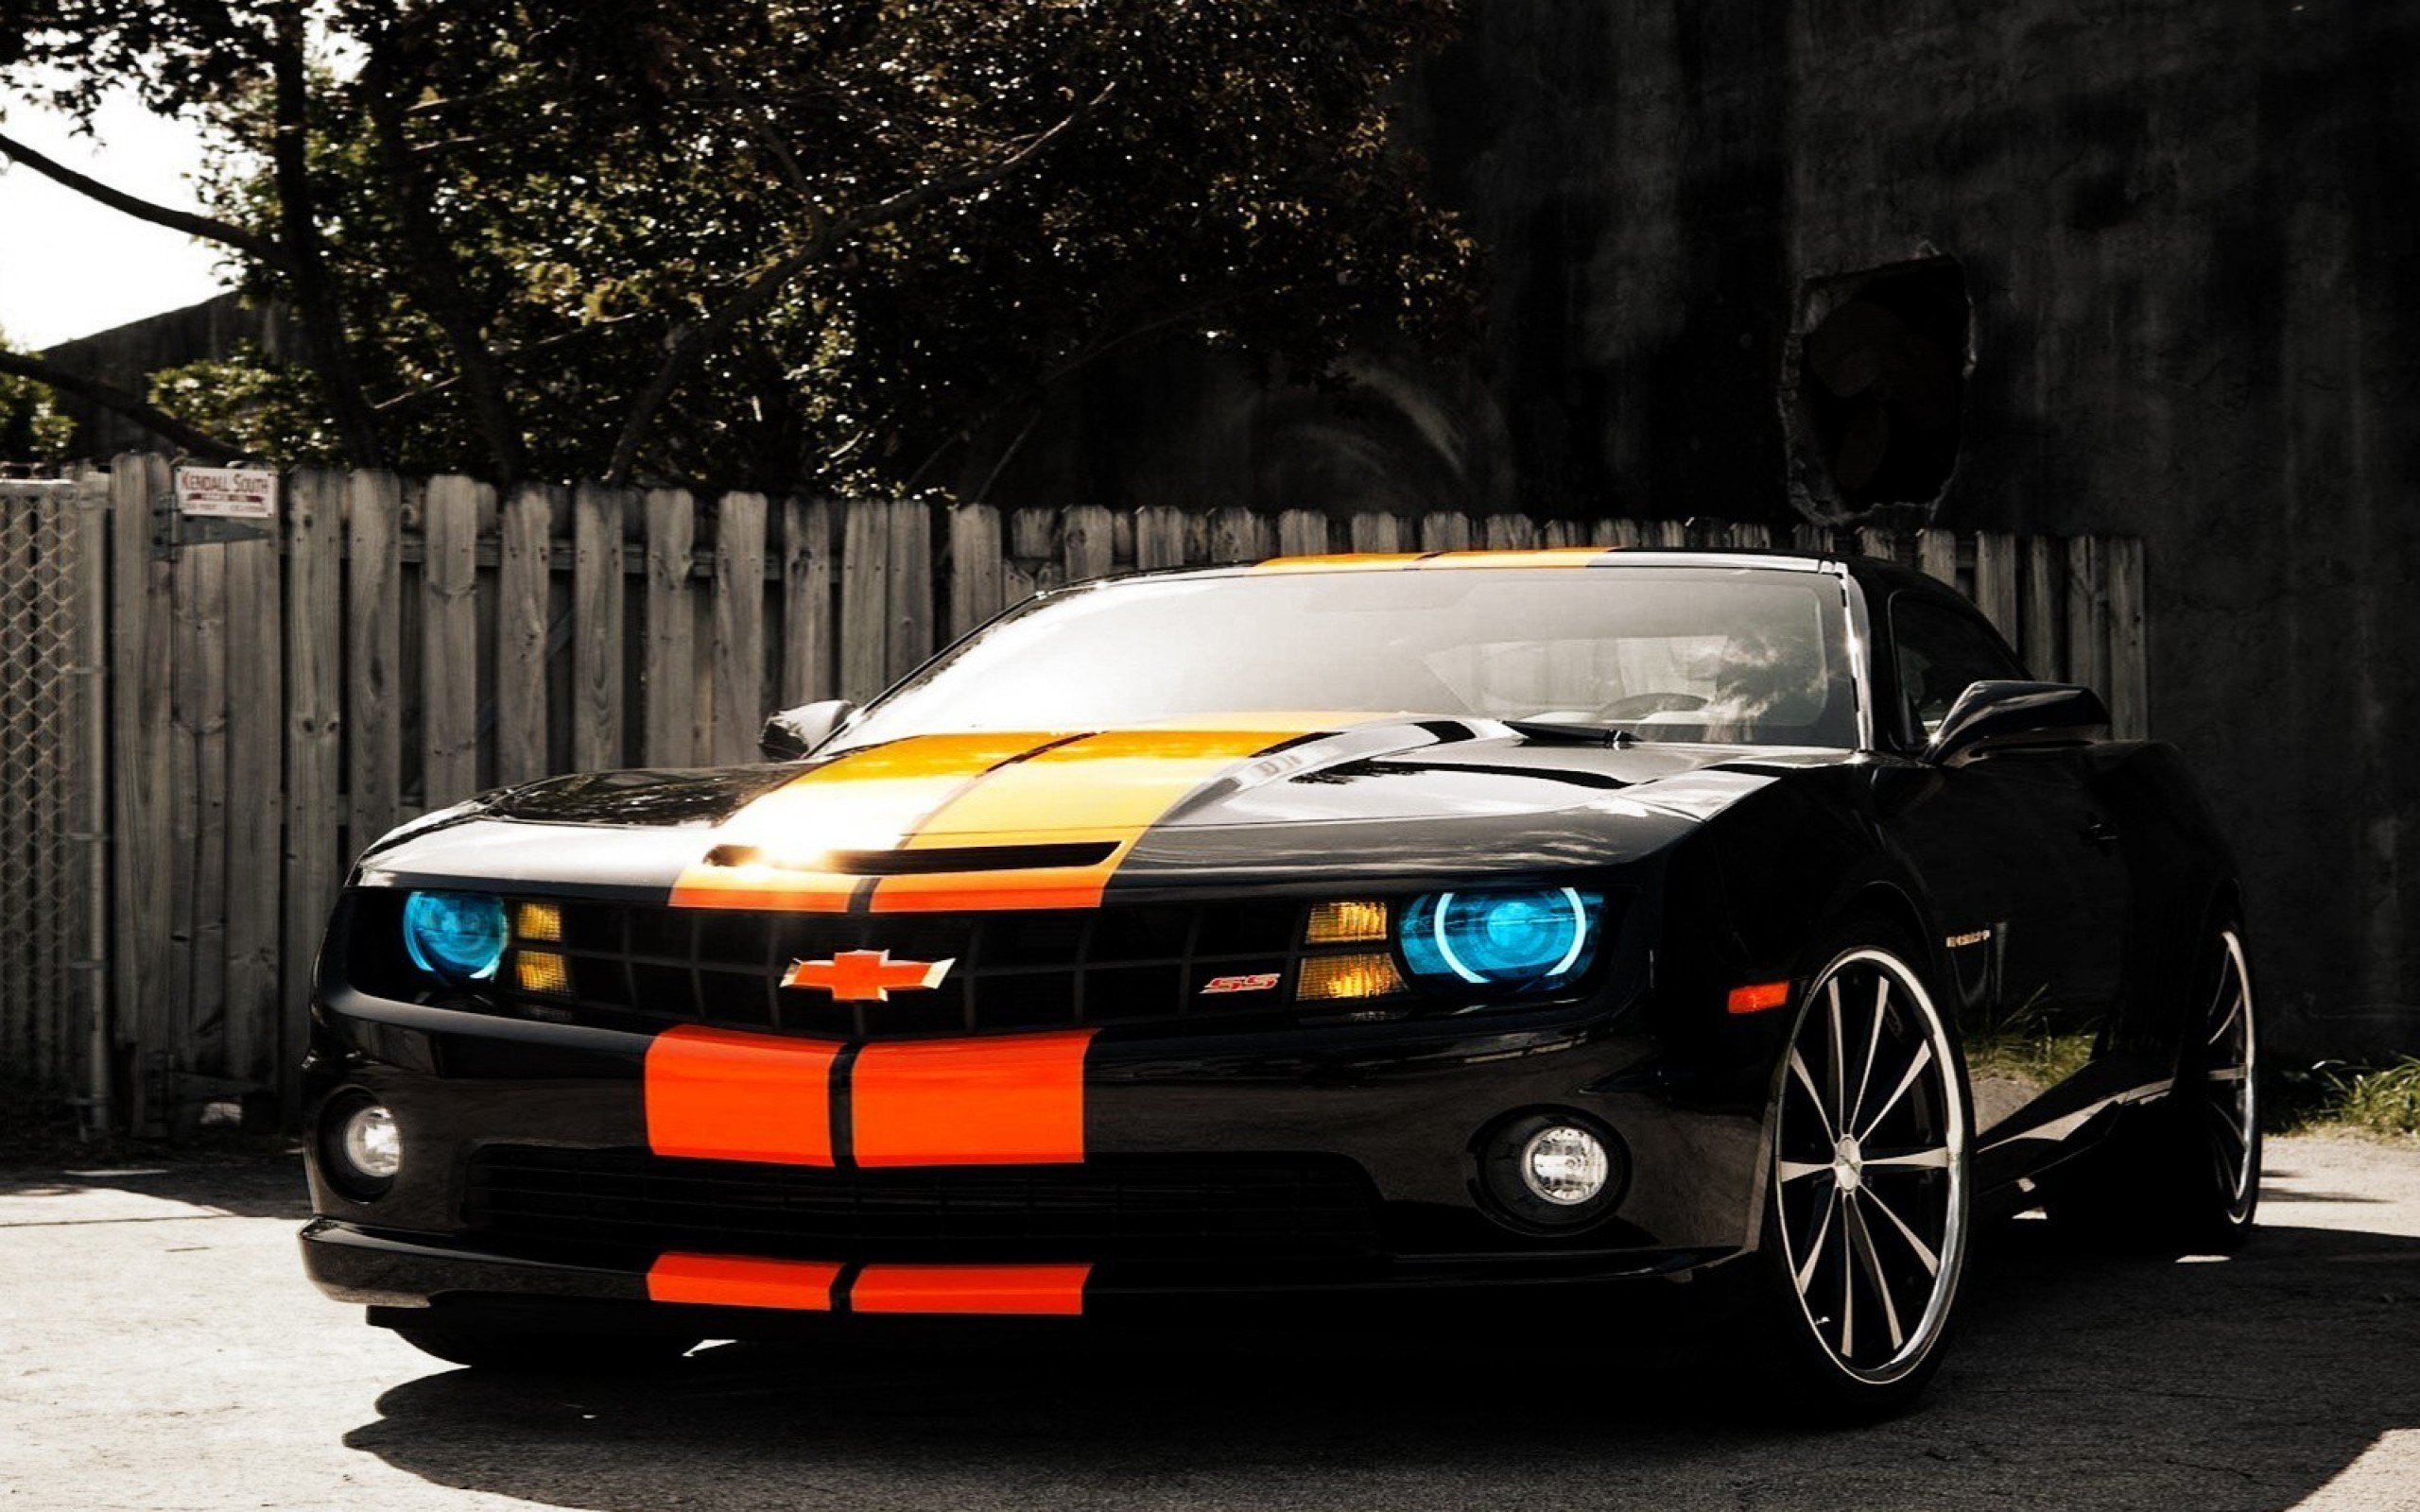 Latest Expensive Cars Hd Car Wallpapers Download Automobile Free Download